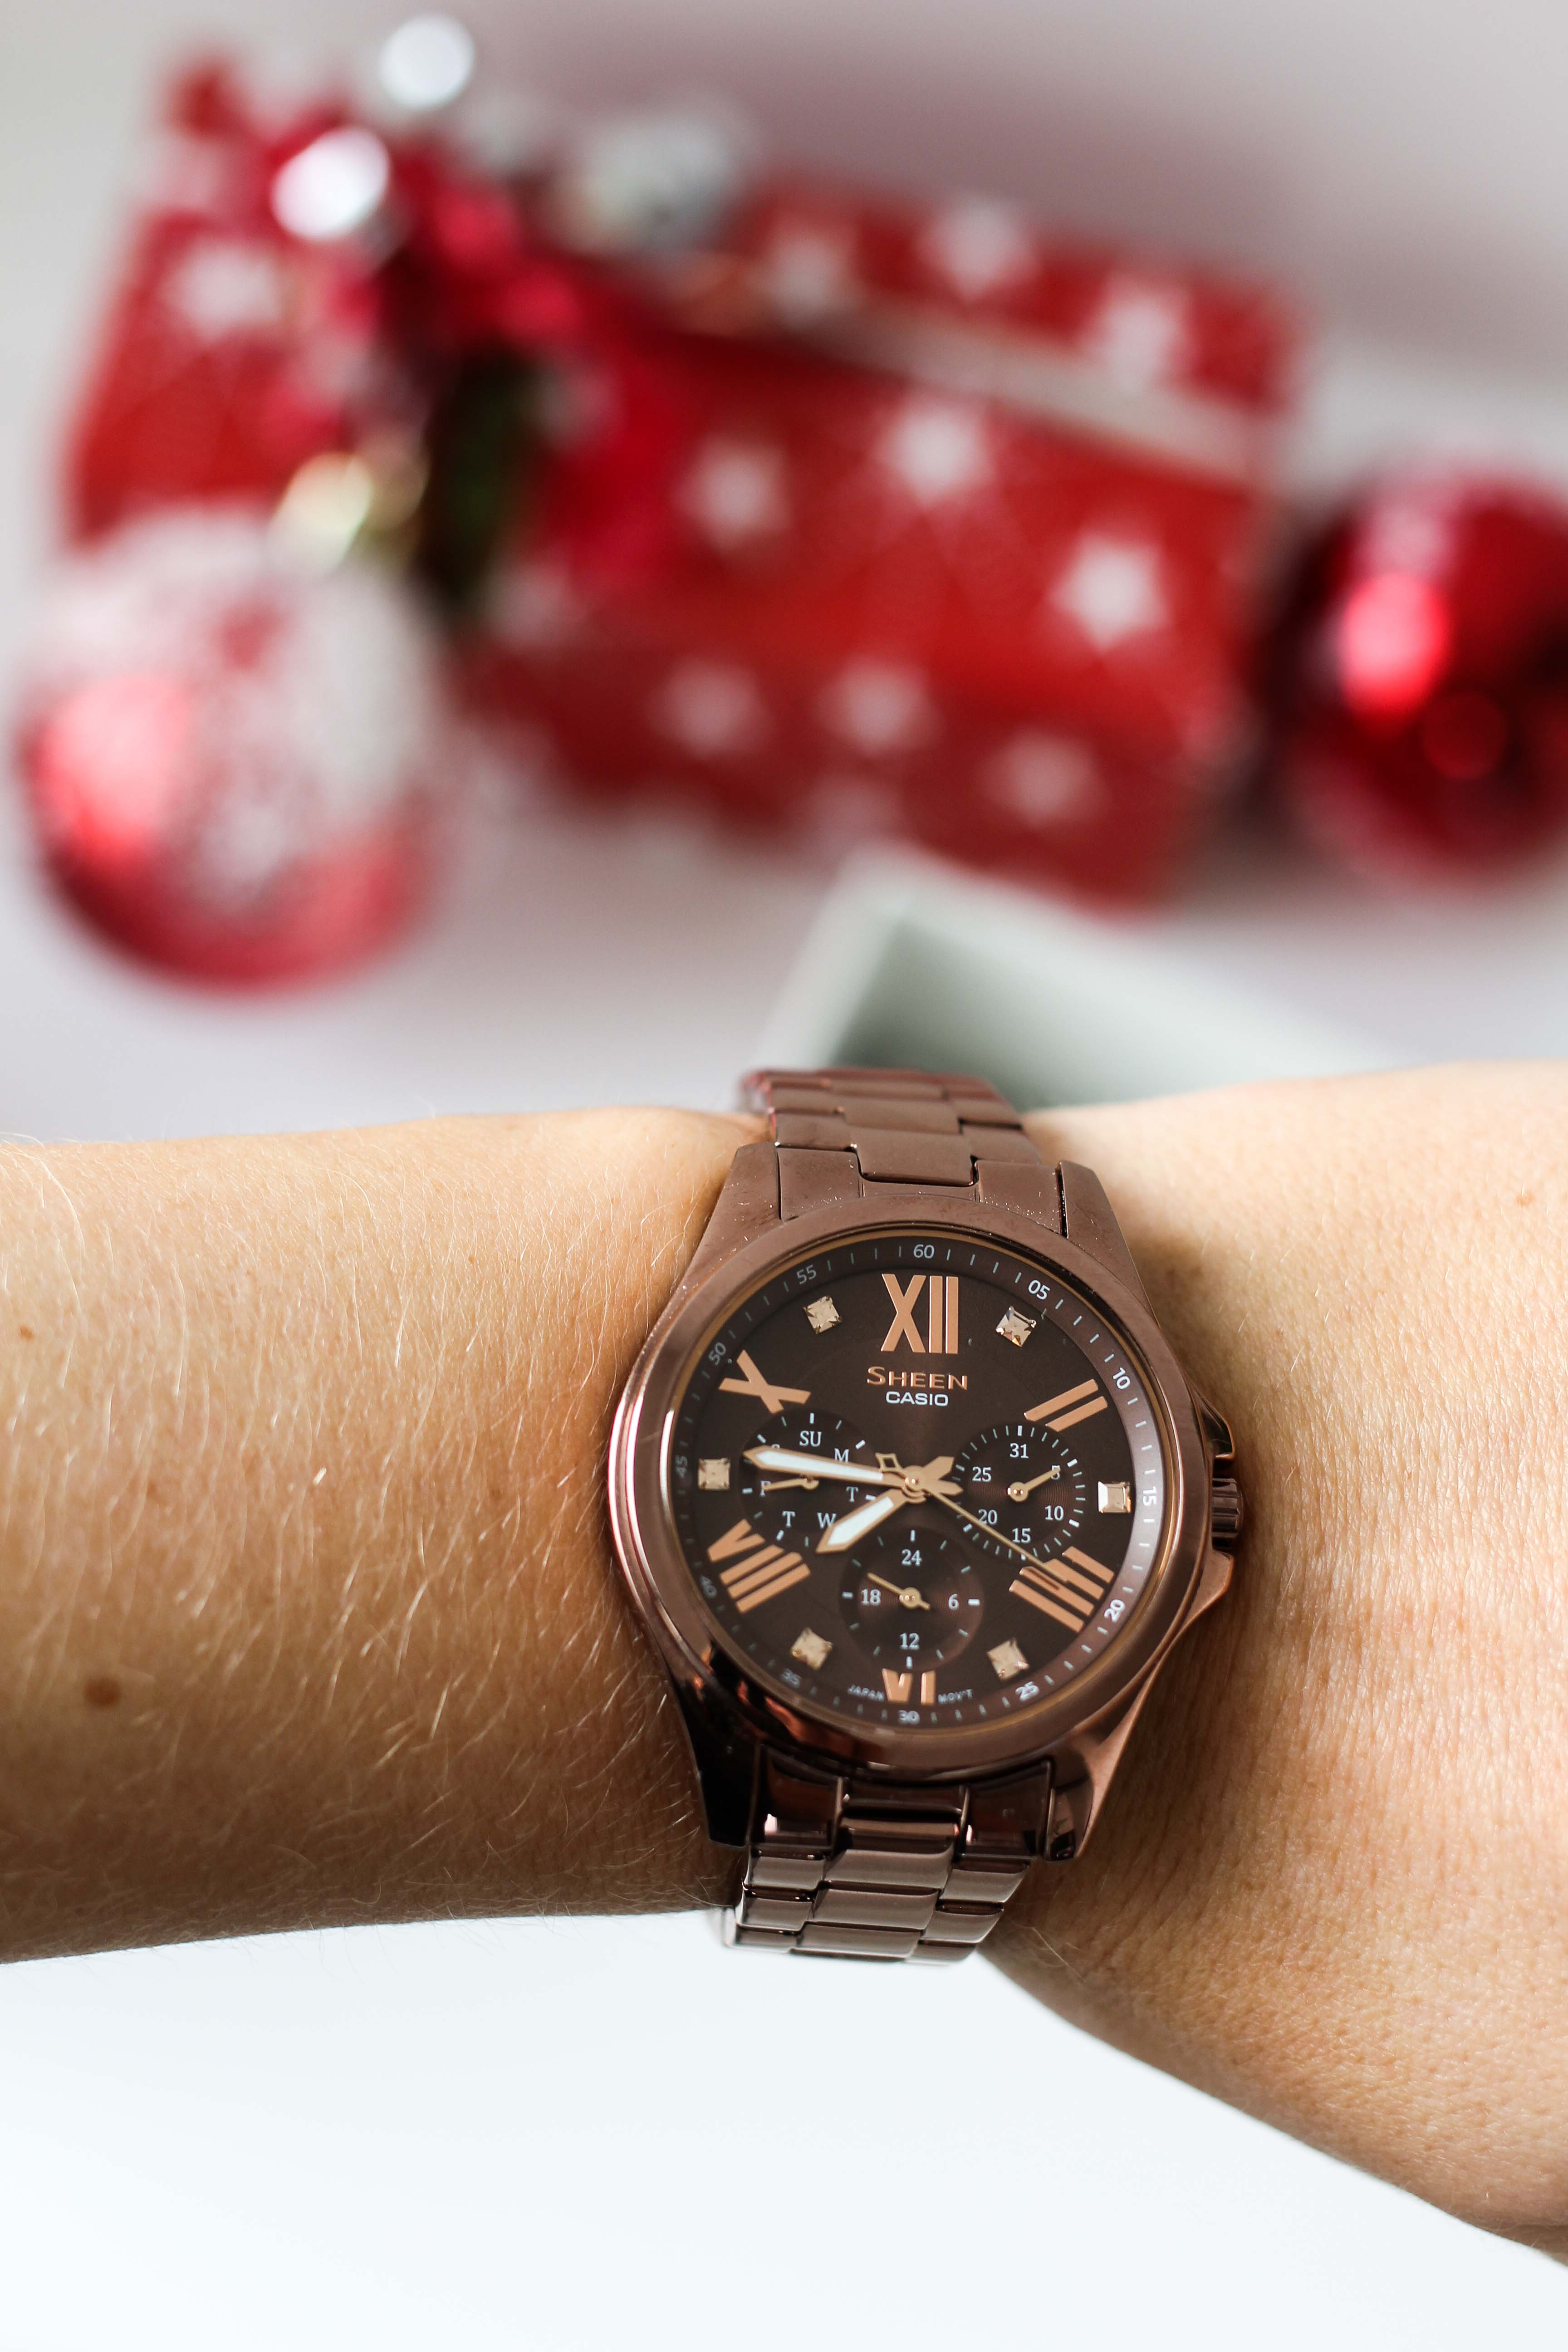 Adventskalender Blog Fashion Blog Deutschland Gewinne Sheen by Casio Damenuhr in Roségold Braun Gewinnspiel Geschenkidee Weihnachten 4